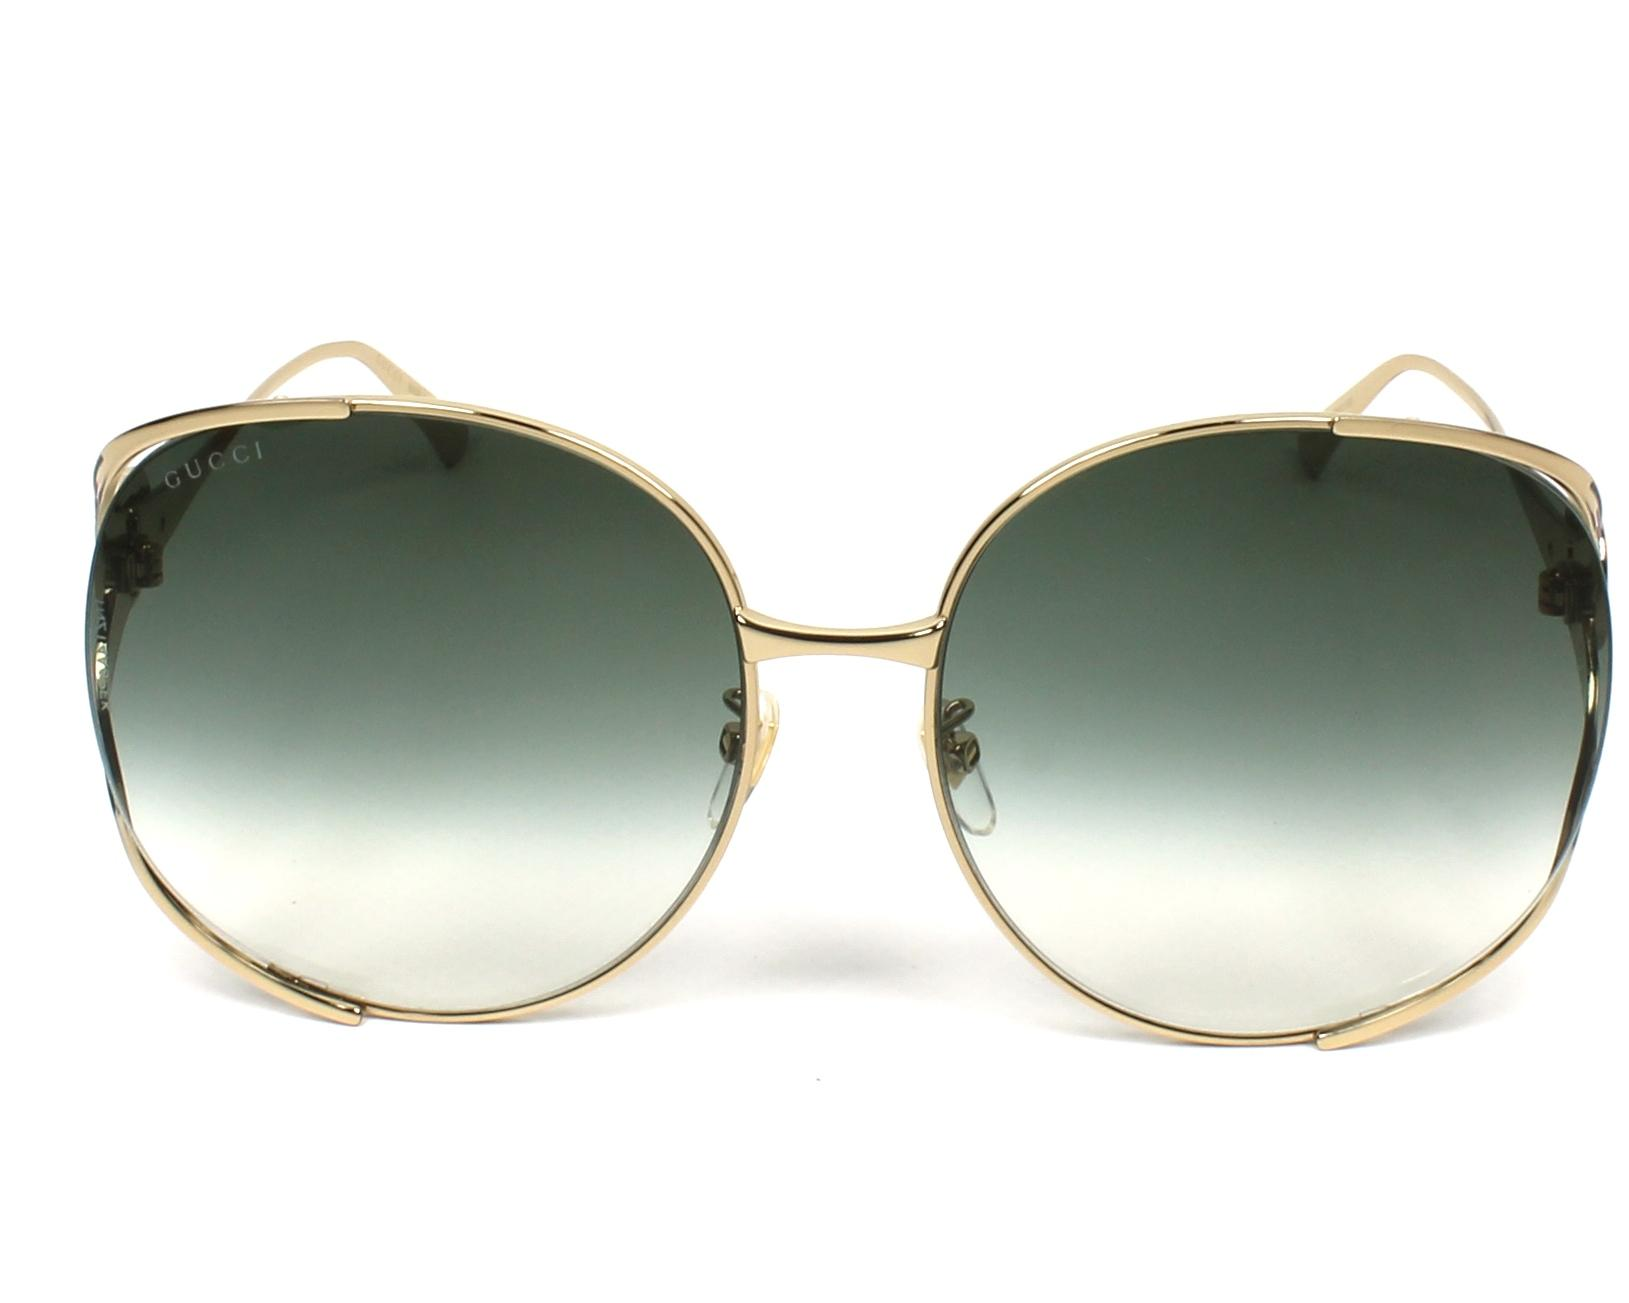 d2d7d429ee9 Sunglasses Gucci GG-0225-S 003 63-17 Gold Green front view